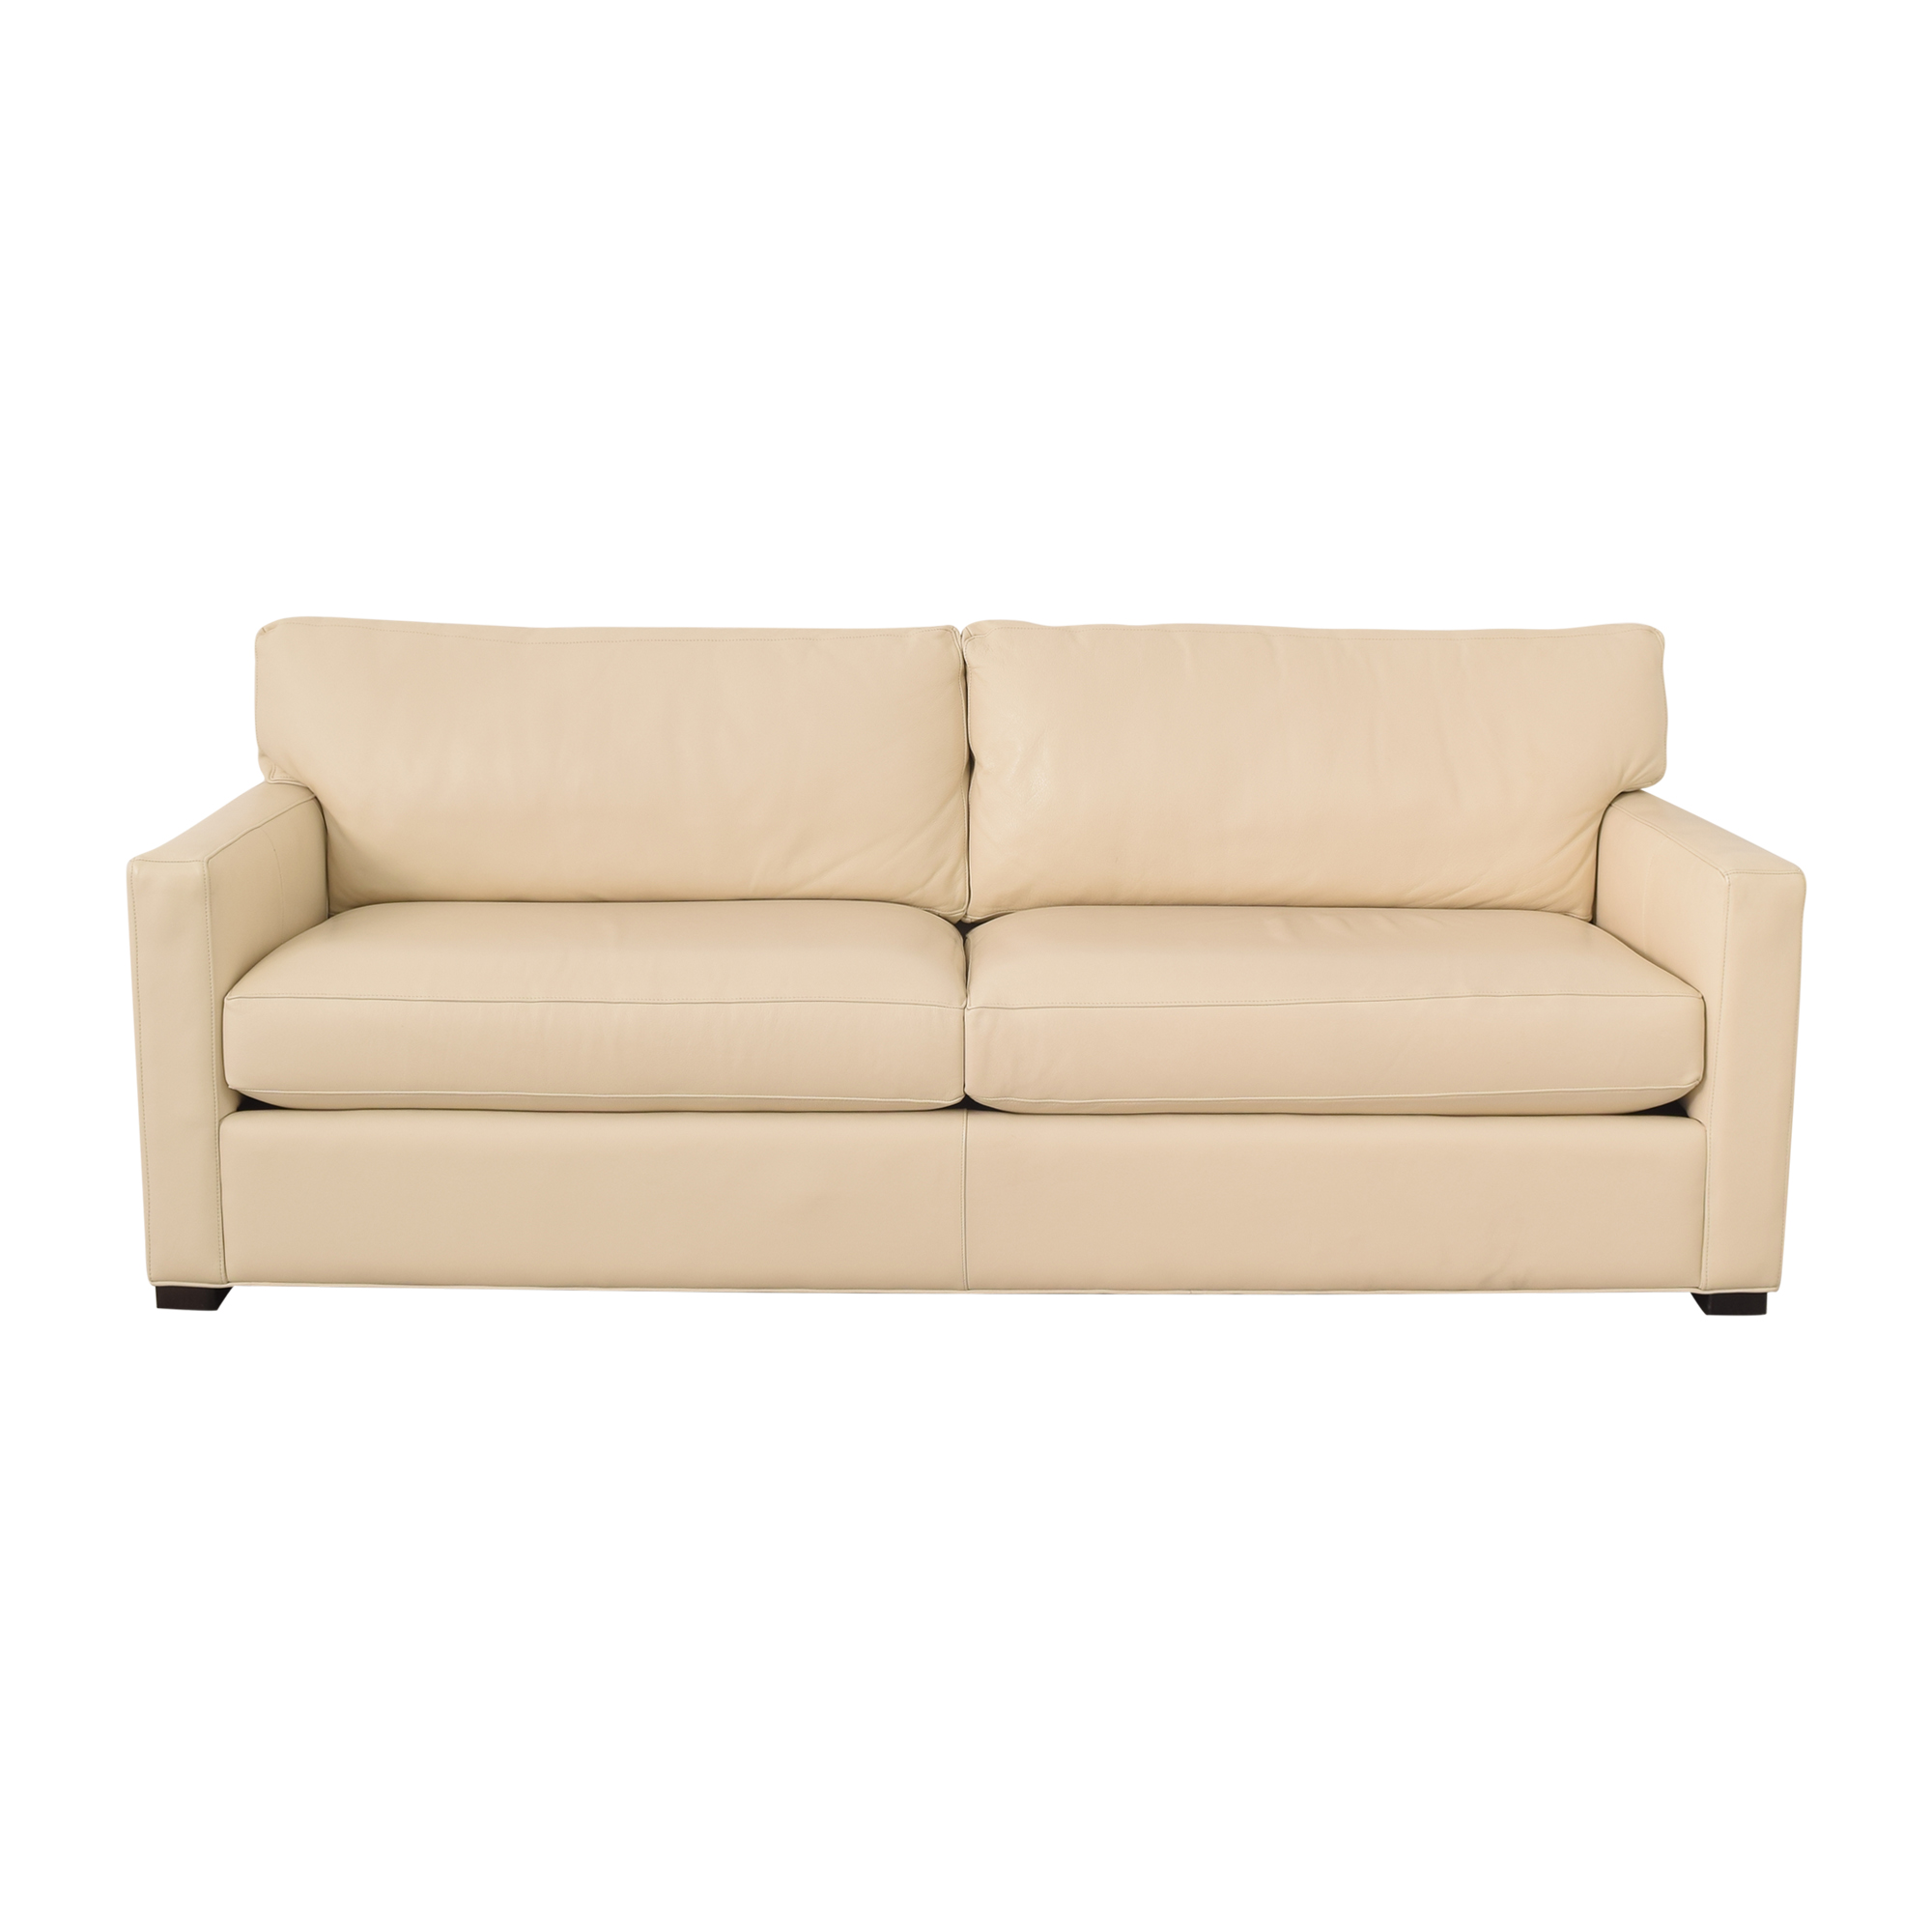 Room & Board Room & Board Two Cushion Sofa coupon